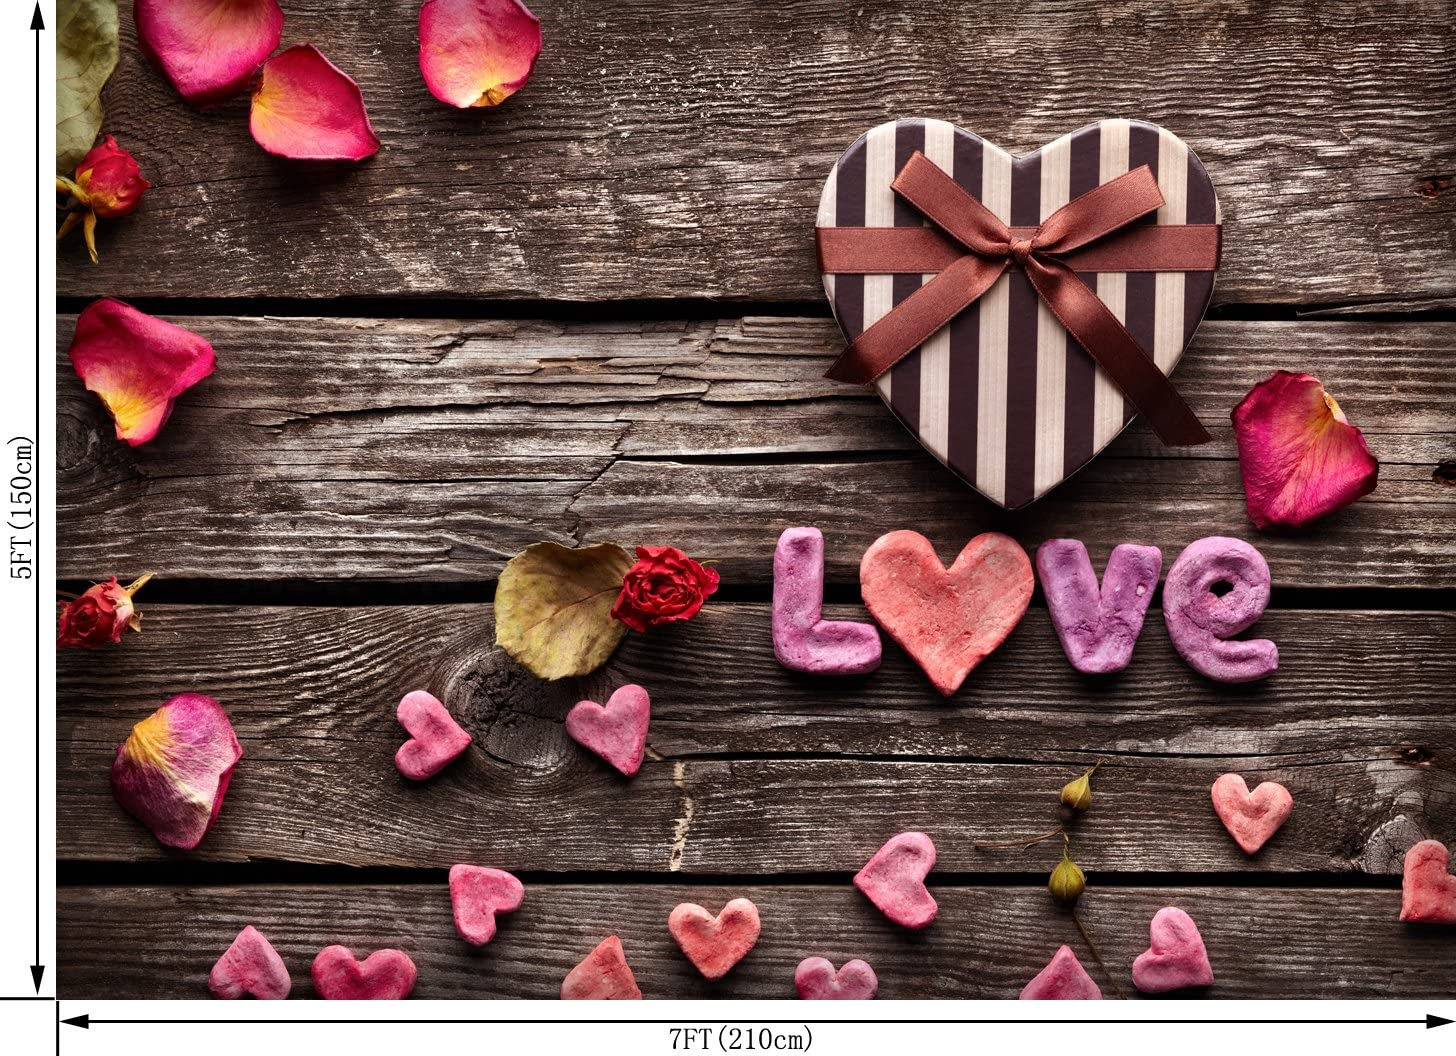 OUYIDA 9X6FT Valentines Day Theme Pictorial Cloth Photography Background Computer-Printed Vinyl Backdrop TD58B